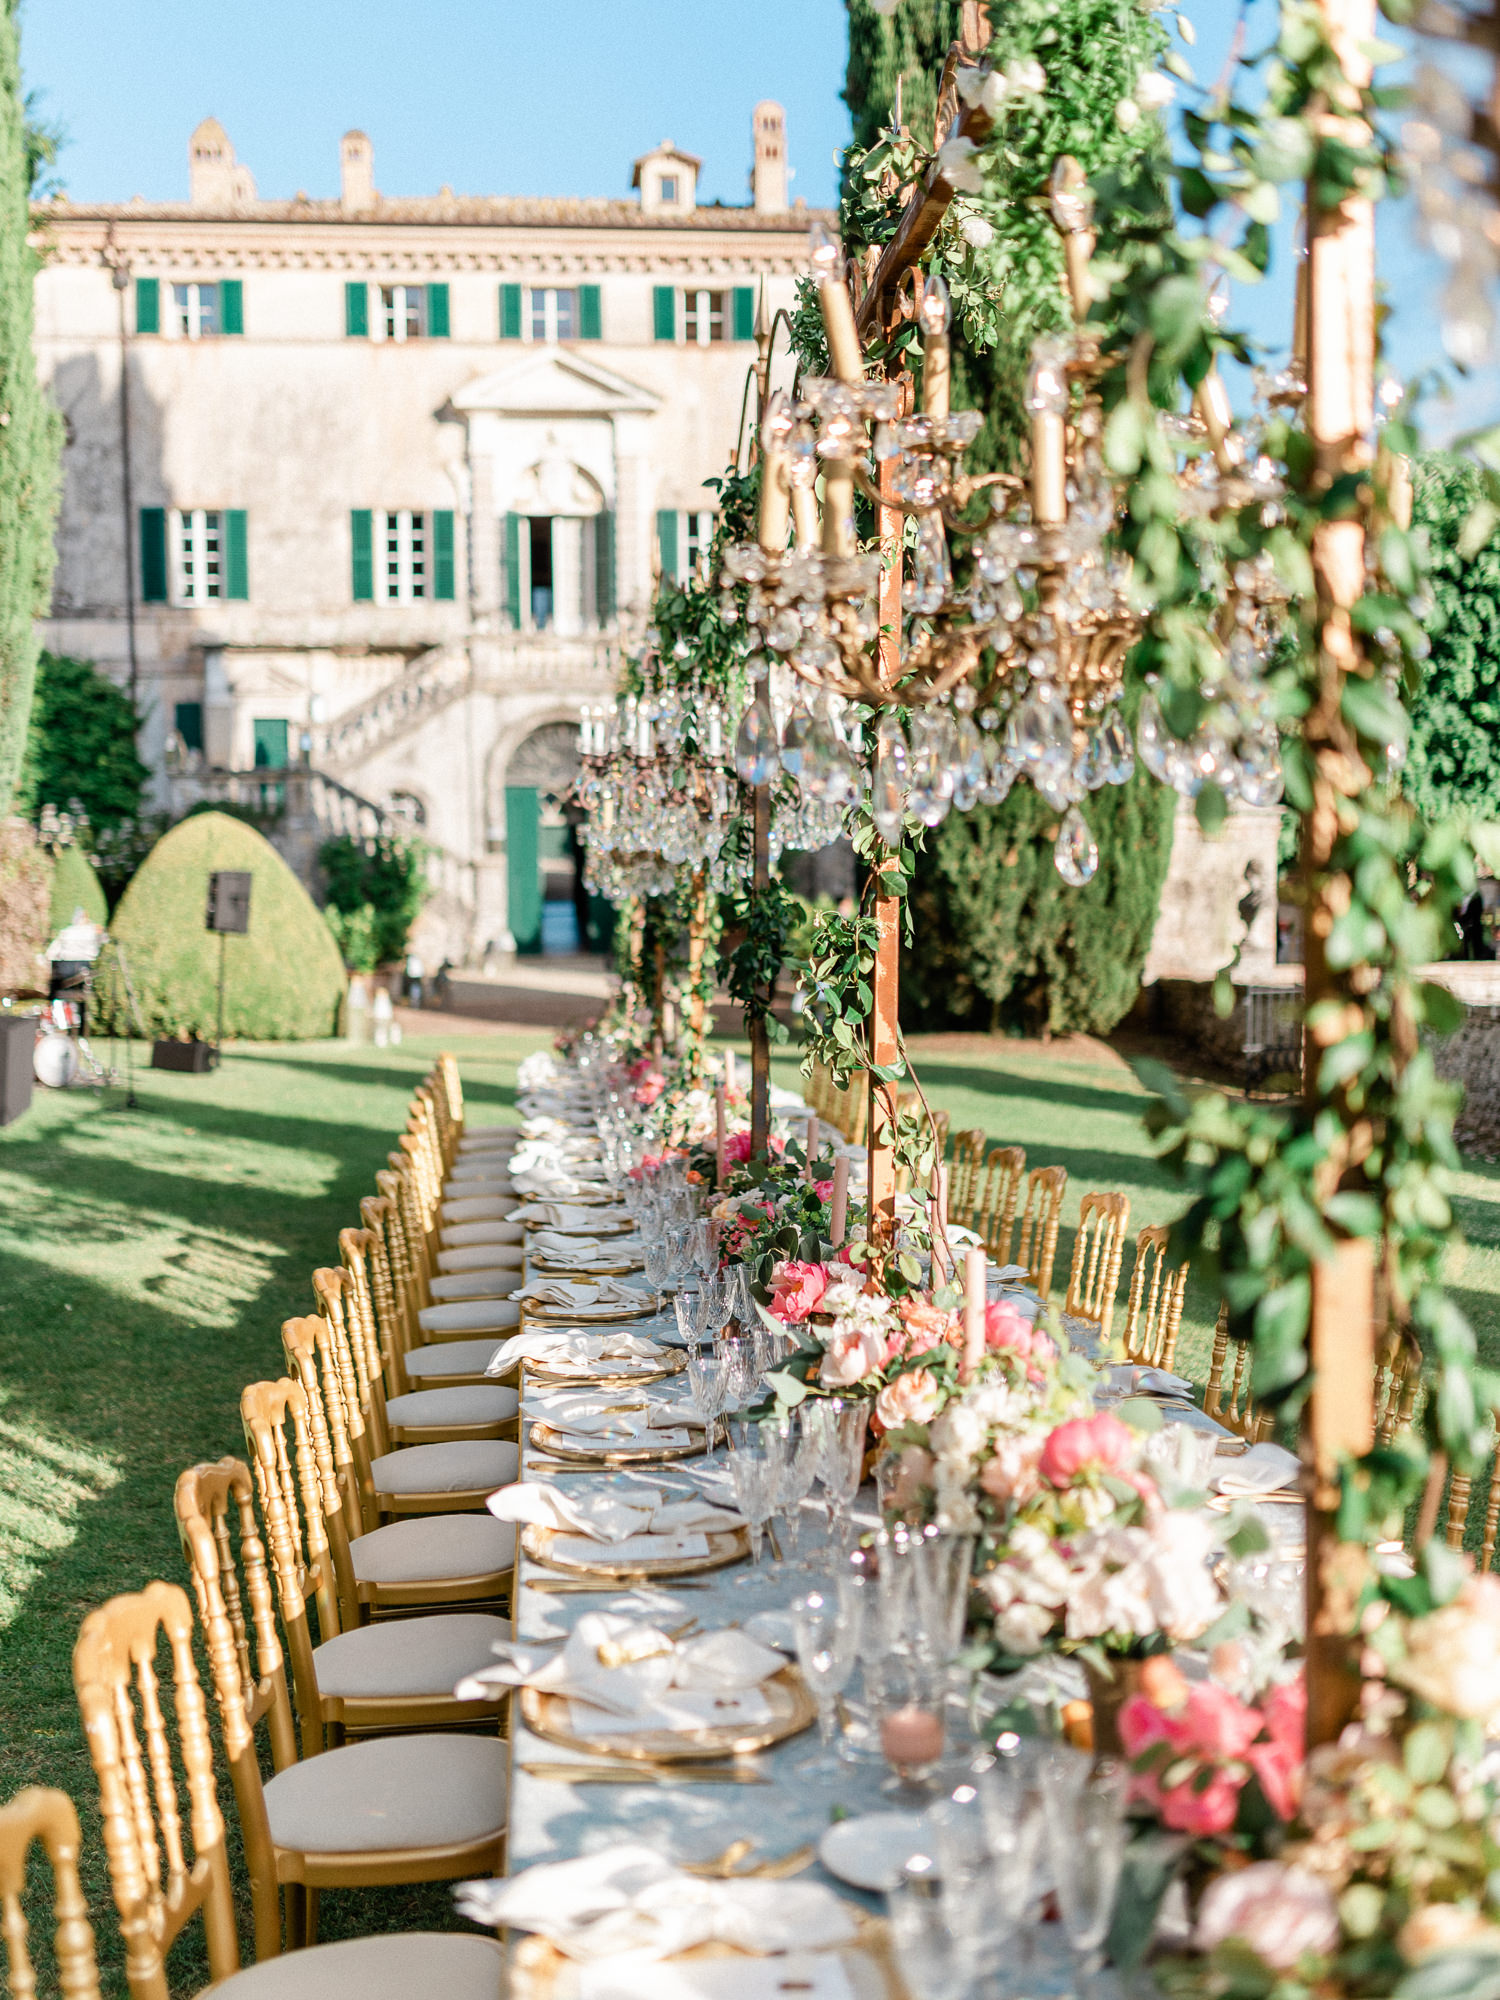 Luxury reception decor at Villa Centinale  - photo by Gianluca Adovasio Photography